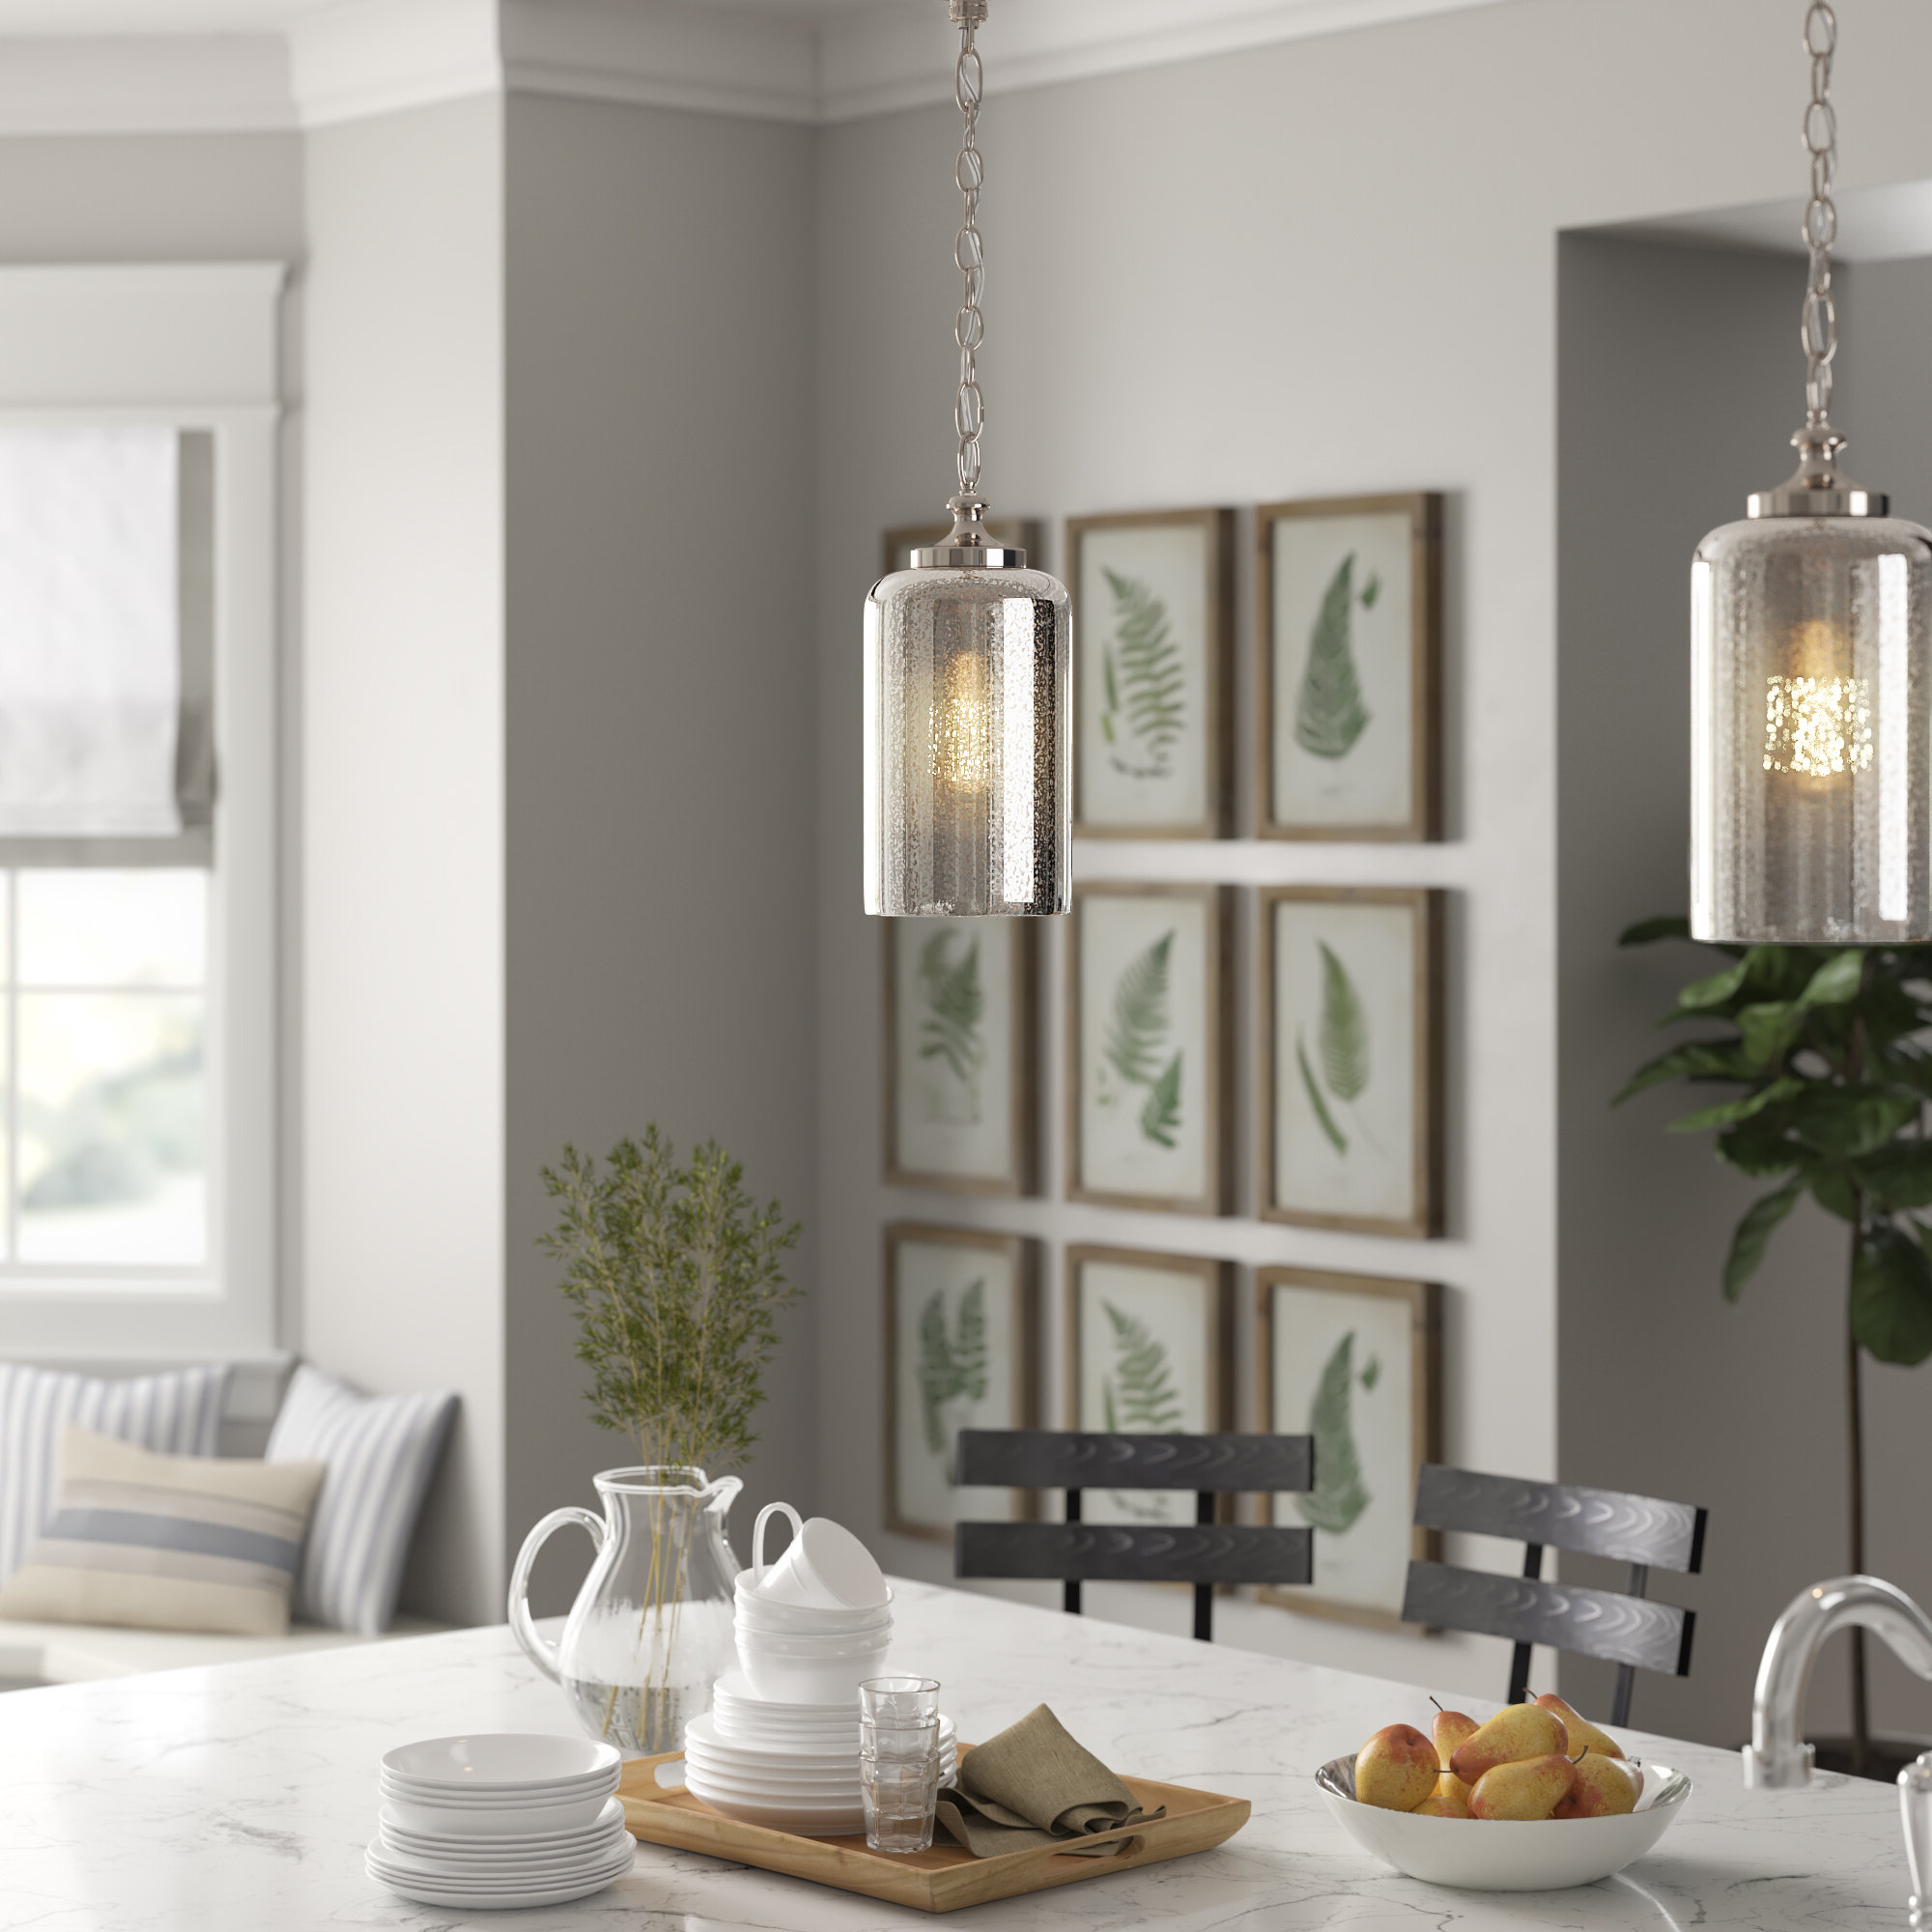 [%Mercury Pendant Lighting Sale – Up To 65% Off Until For Current Ammerman 1 Light Cone Pendants|Ammerman 1 Light Cone Pendants With Regard To Trendy Mercury Pendant Lighting Sale – Up To 65% Off Until|Popular Ammerman 1 Light Cone Pendants Pertaining To Mercury Pendant Lighting Sale – Up To 65% Off Until|Best And Newest Mercury Pendant Lighting Sale – Up To 65% Off Until Pertaining To Ammerman 1 Light Cone Pendants%] (View 1 of 20)